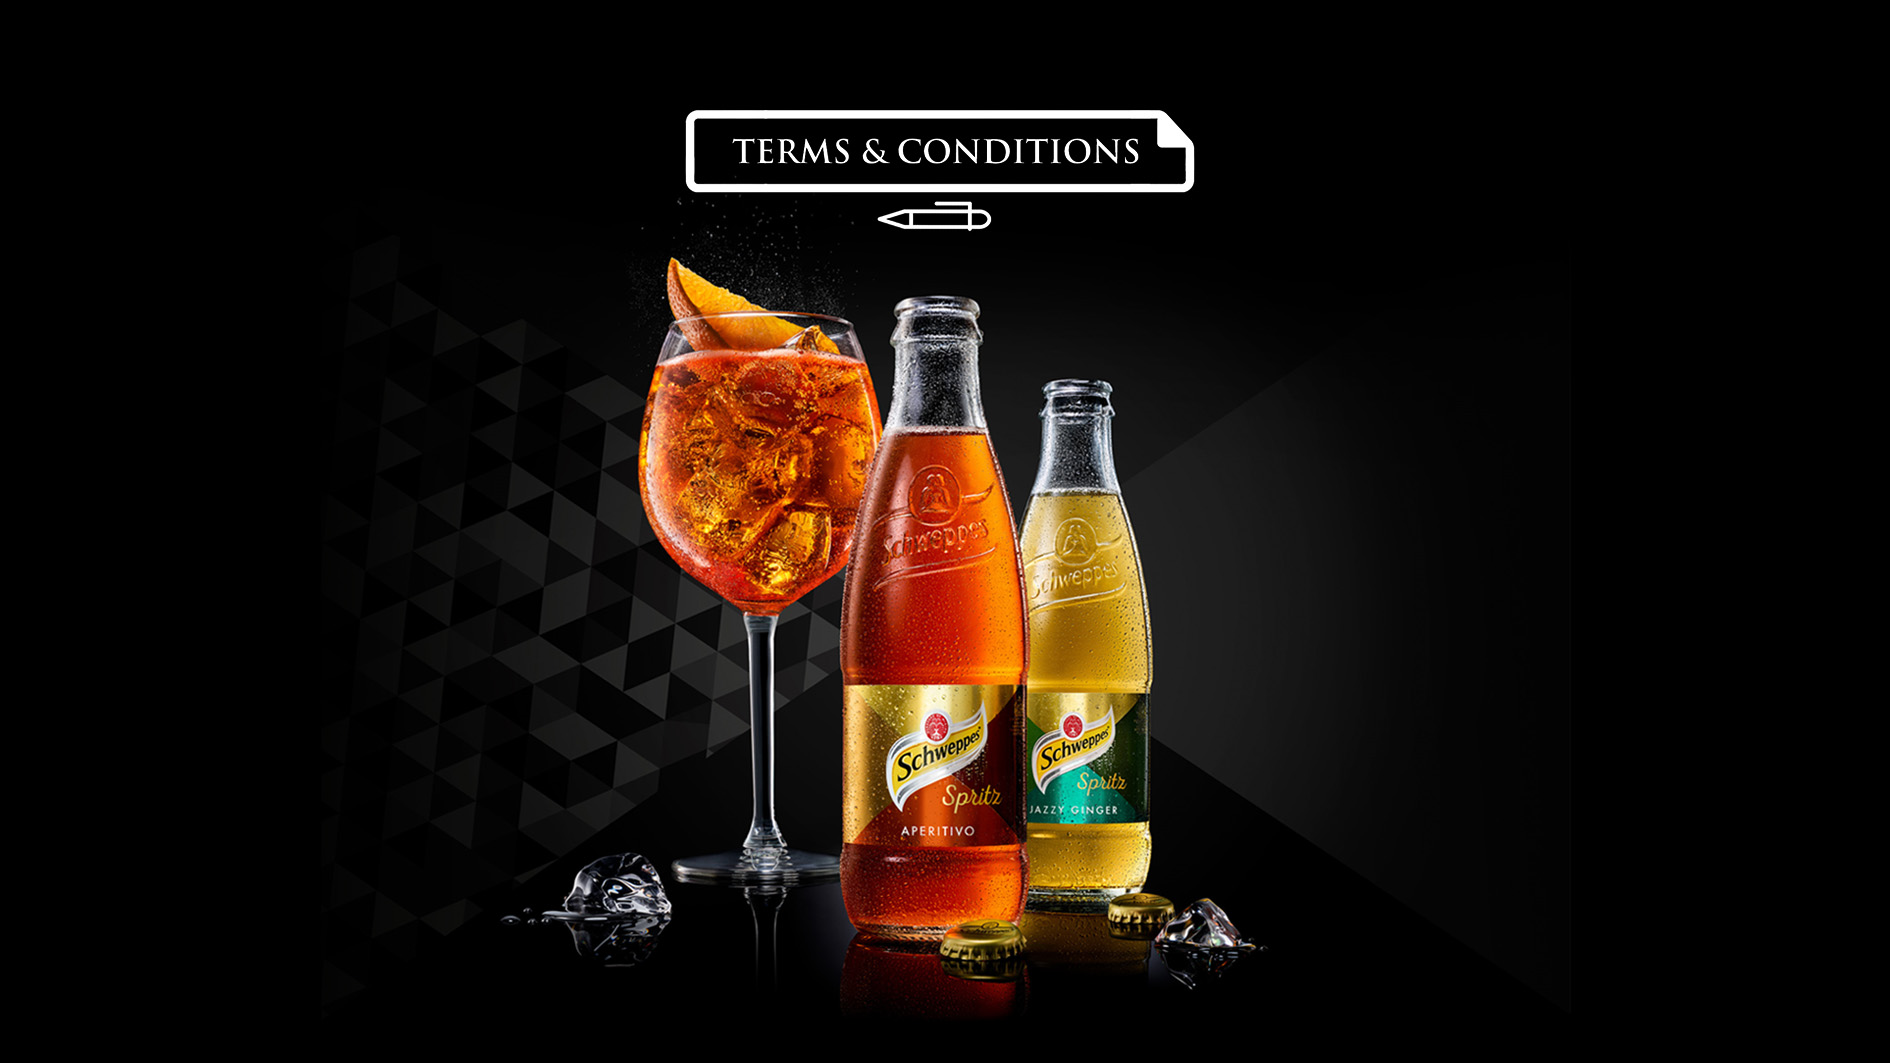 Schweppes Spritz Terms and Conditions